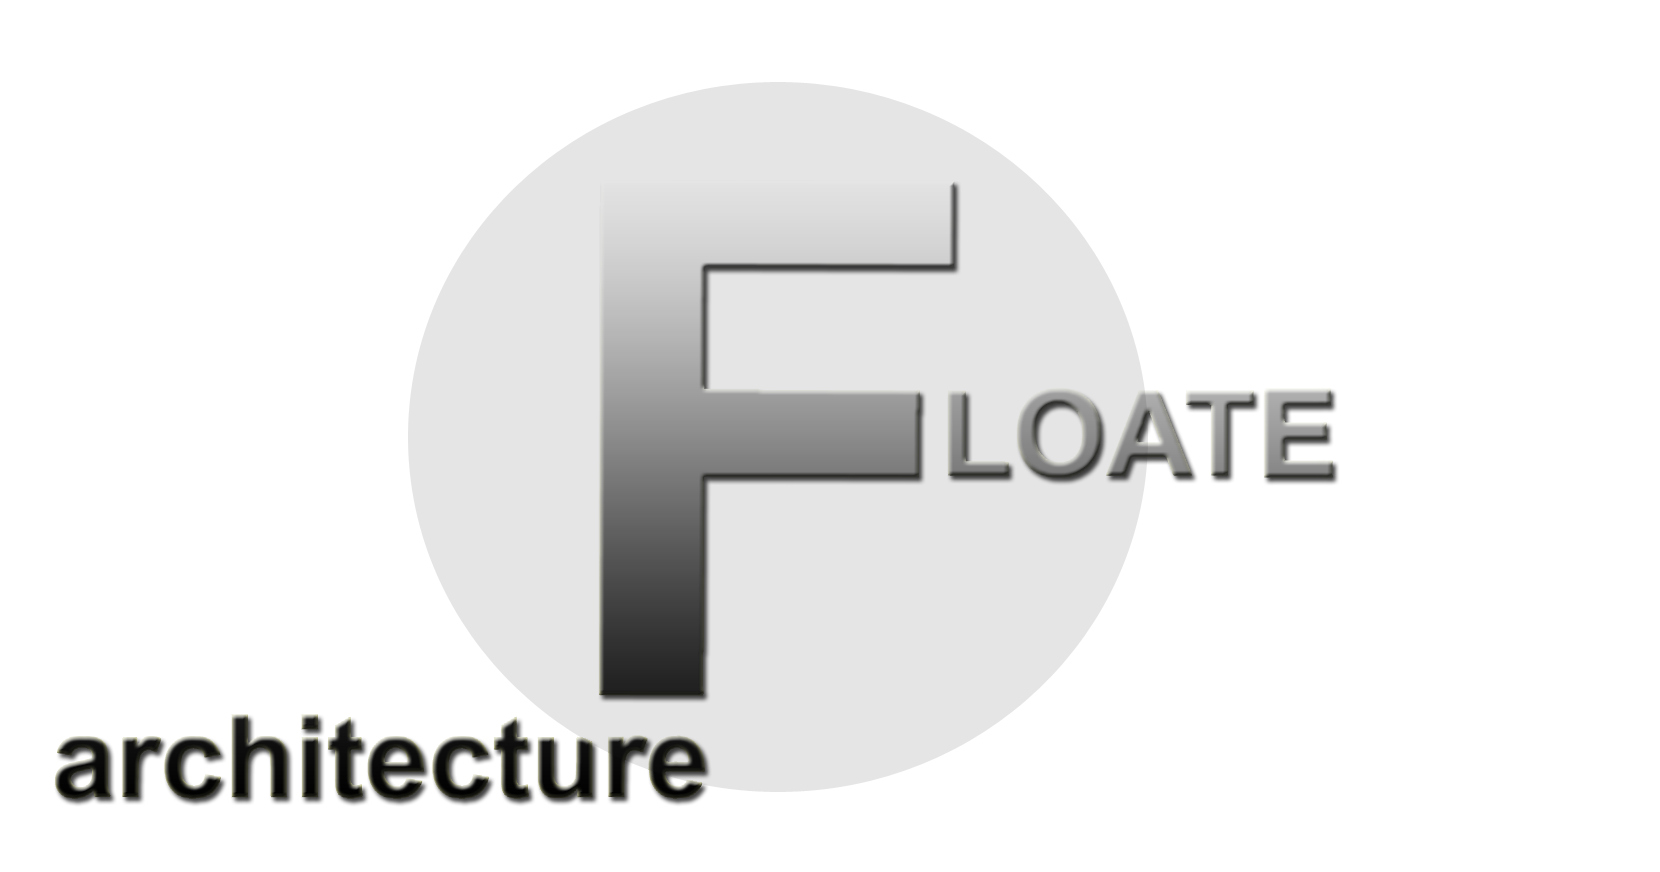 FLOATE architecture